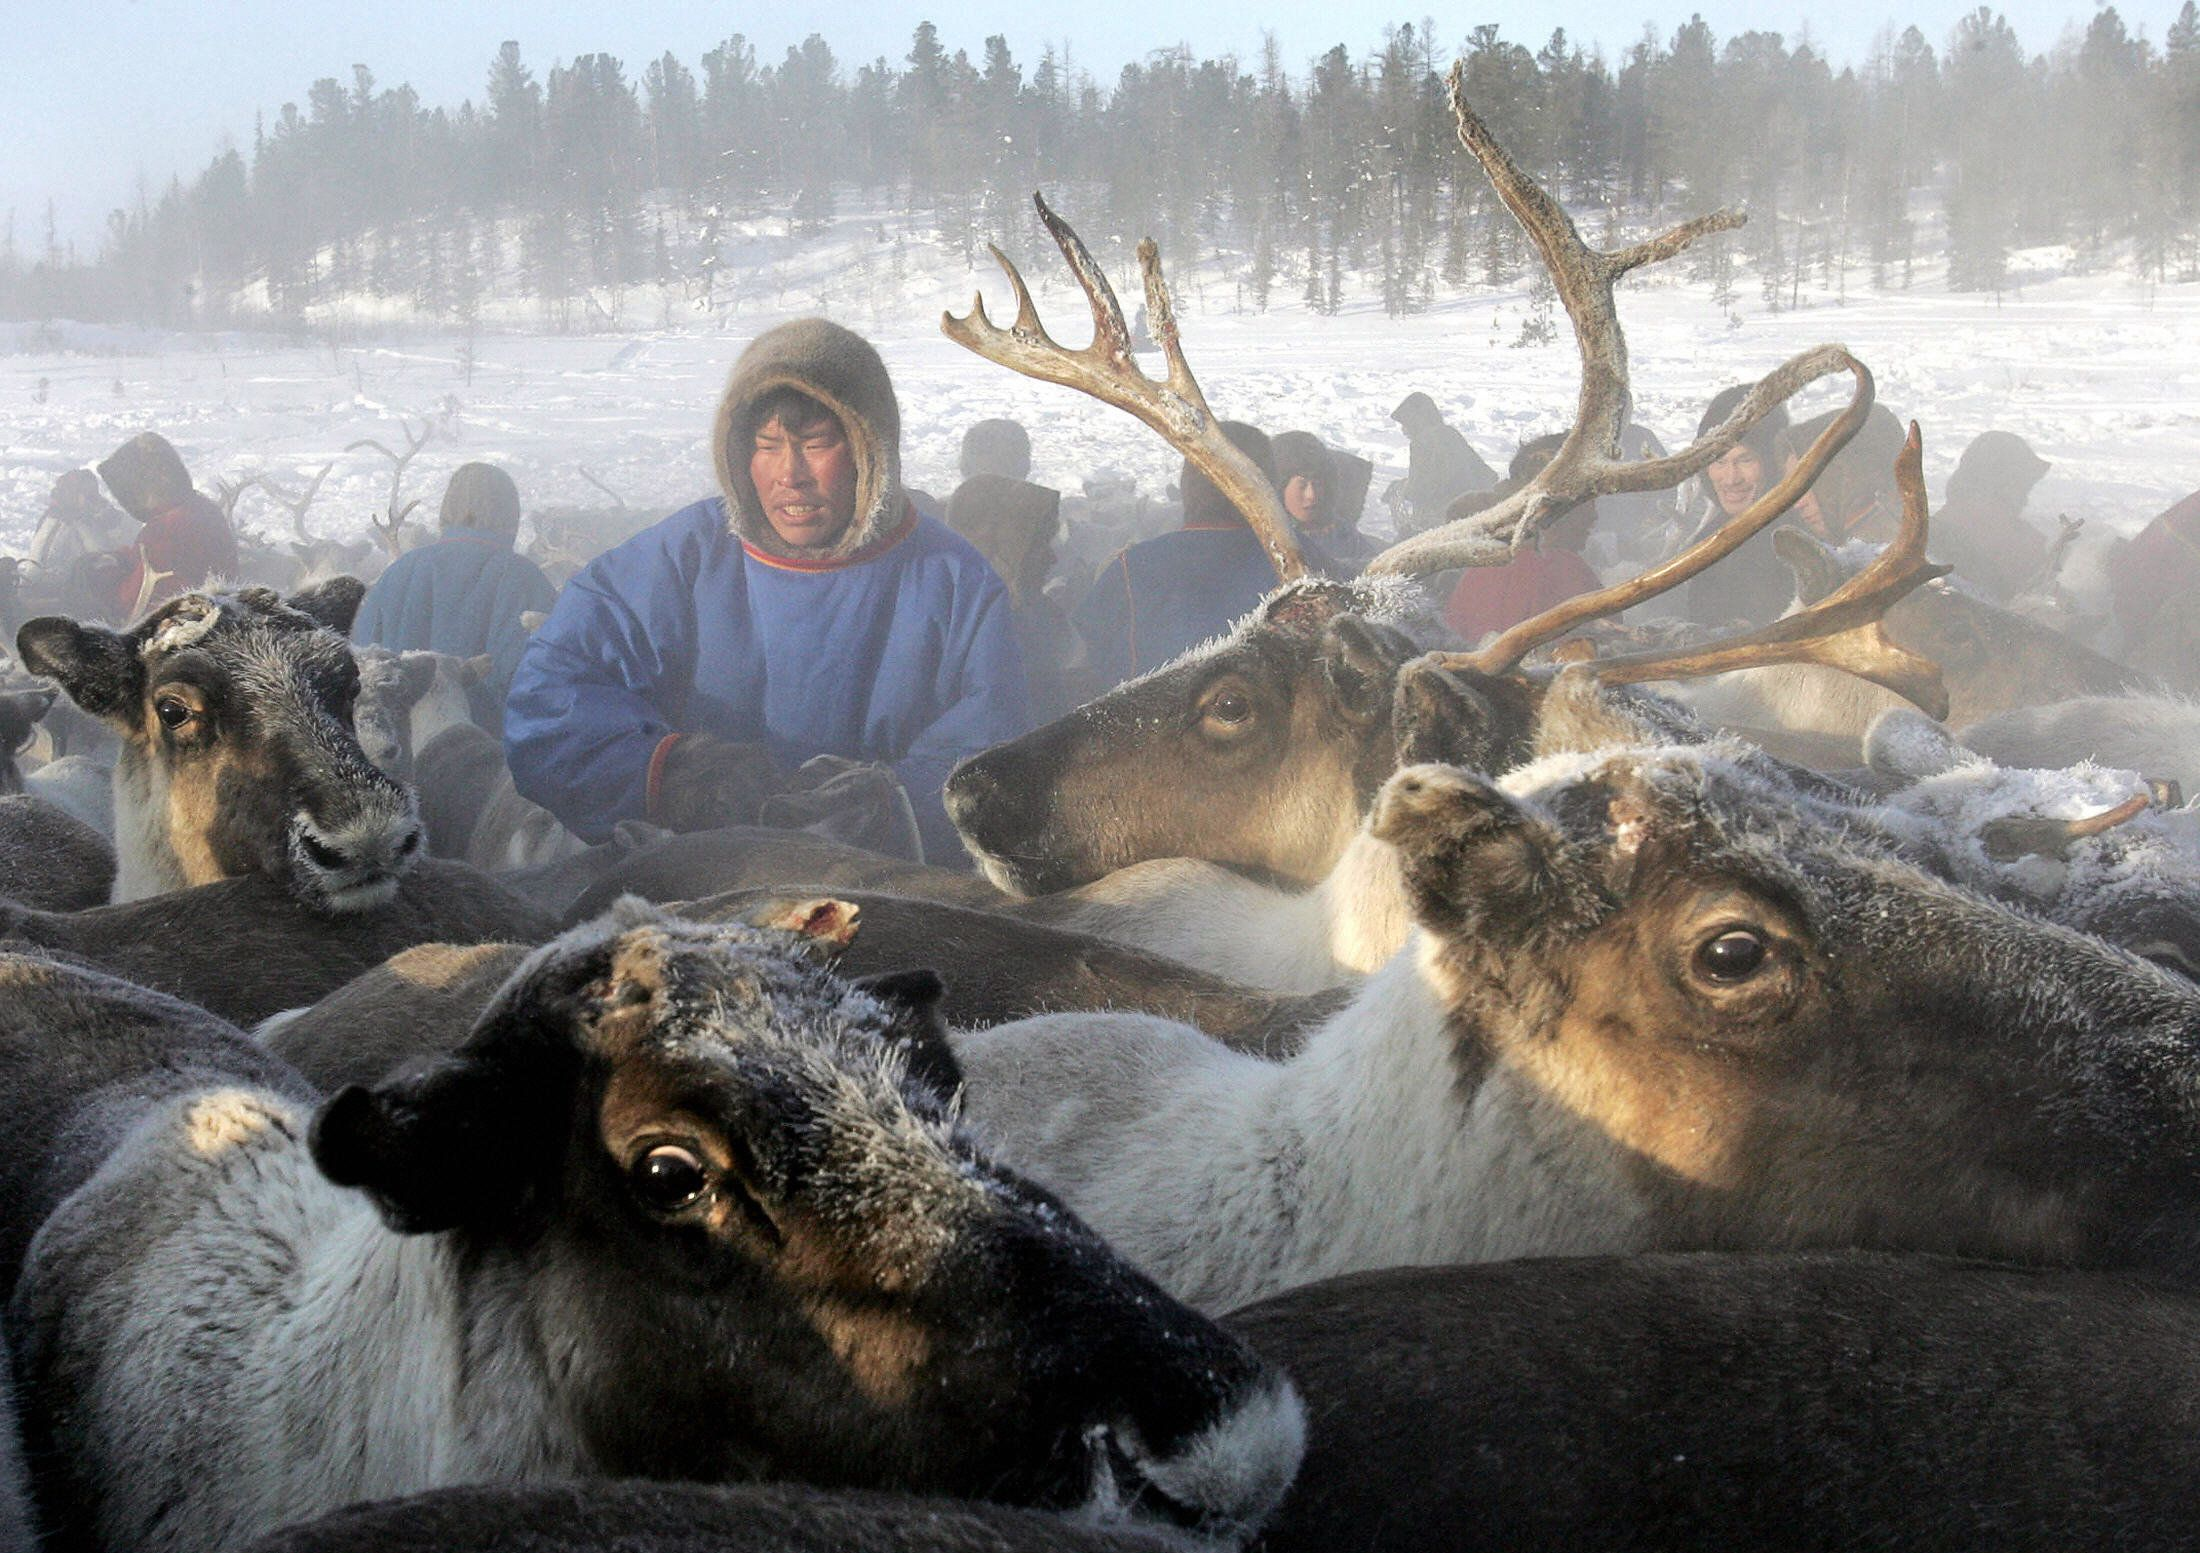 NADYM, RUSSIAN FEDERATION:  A Nenets herdsman gathers his reindeer as they prepare to leave a site outside the town of Nadym, 3,800 km North-East of Moscow in Siberia to find a new place for stay, 14 March 2005. The Nenets people live in snow and freezing temperatures some 260 days of the year and are mainly nomadic reindeer herdsmen. AFP PHOTO / TATYANA MAKEYEVA  (Photo credit should read TATYANA MAKEYEVA/AFP/Getty Images)